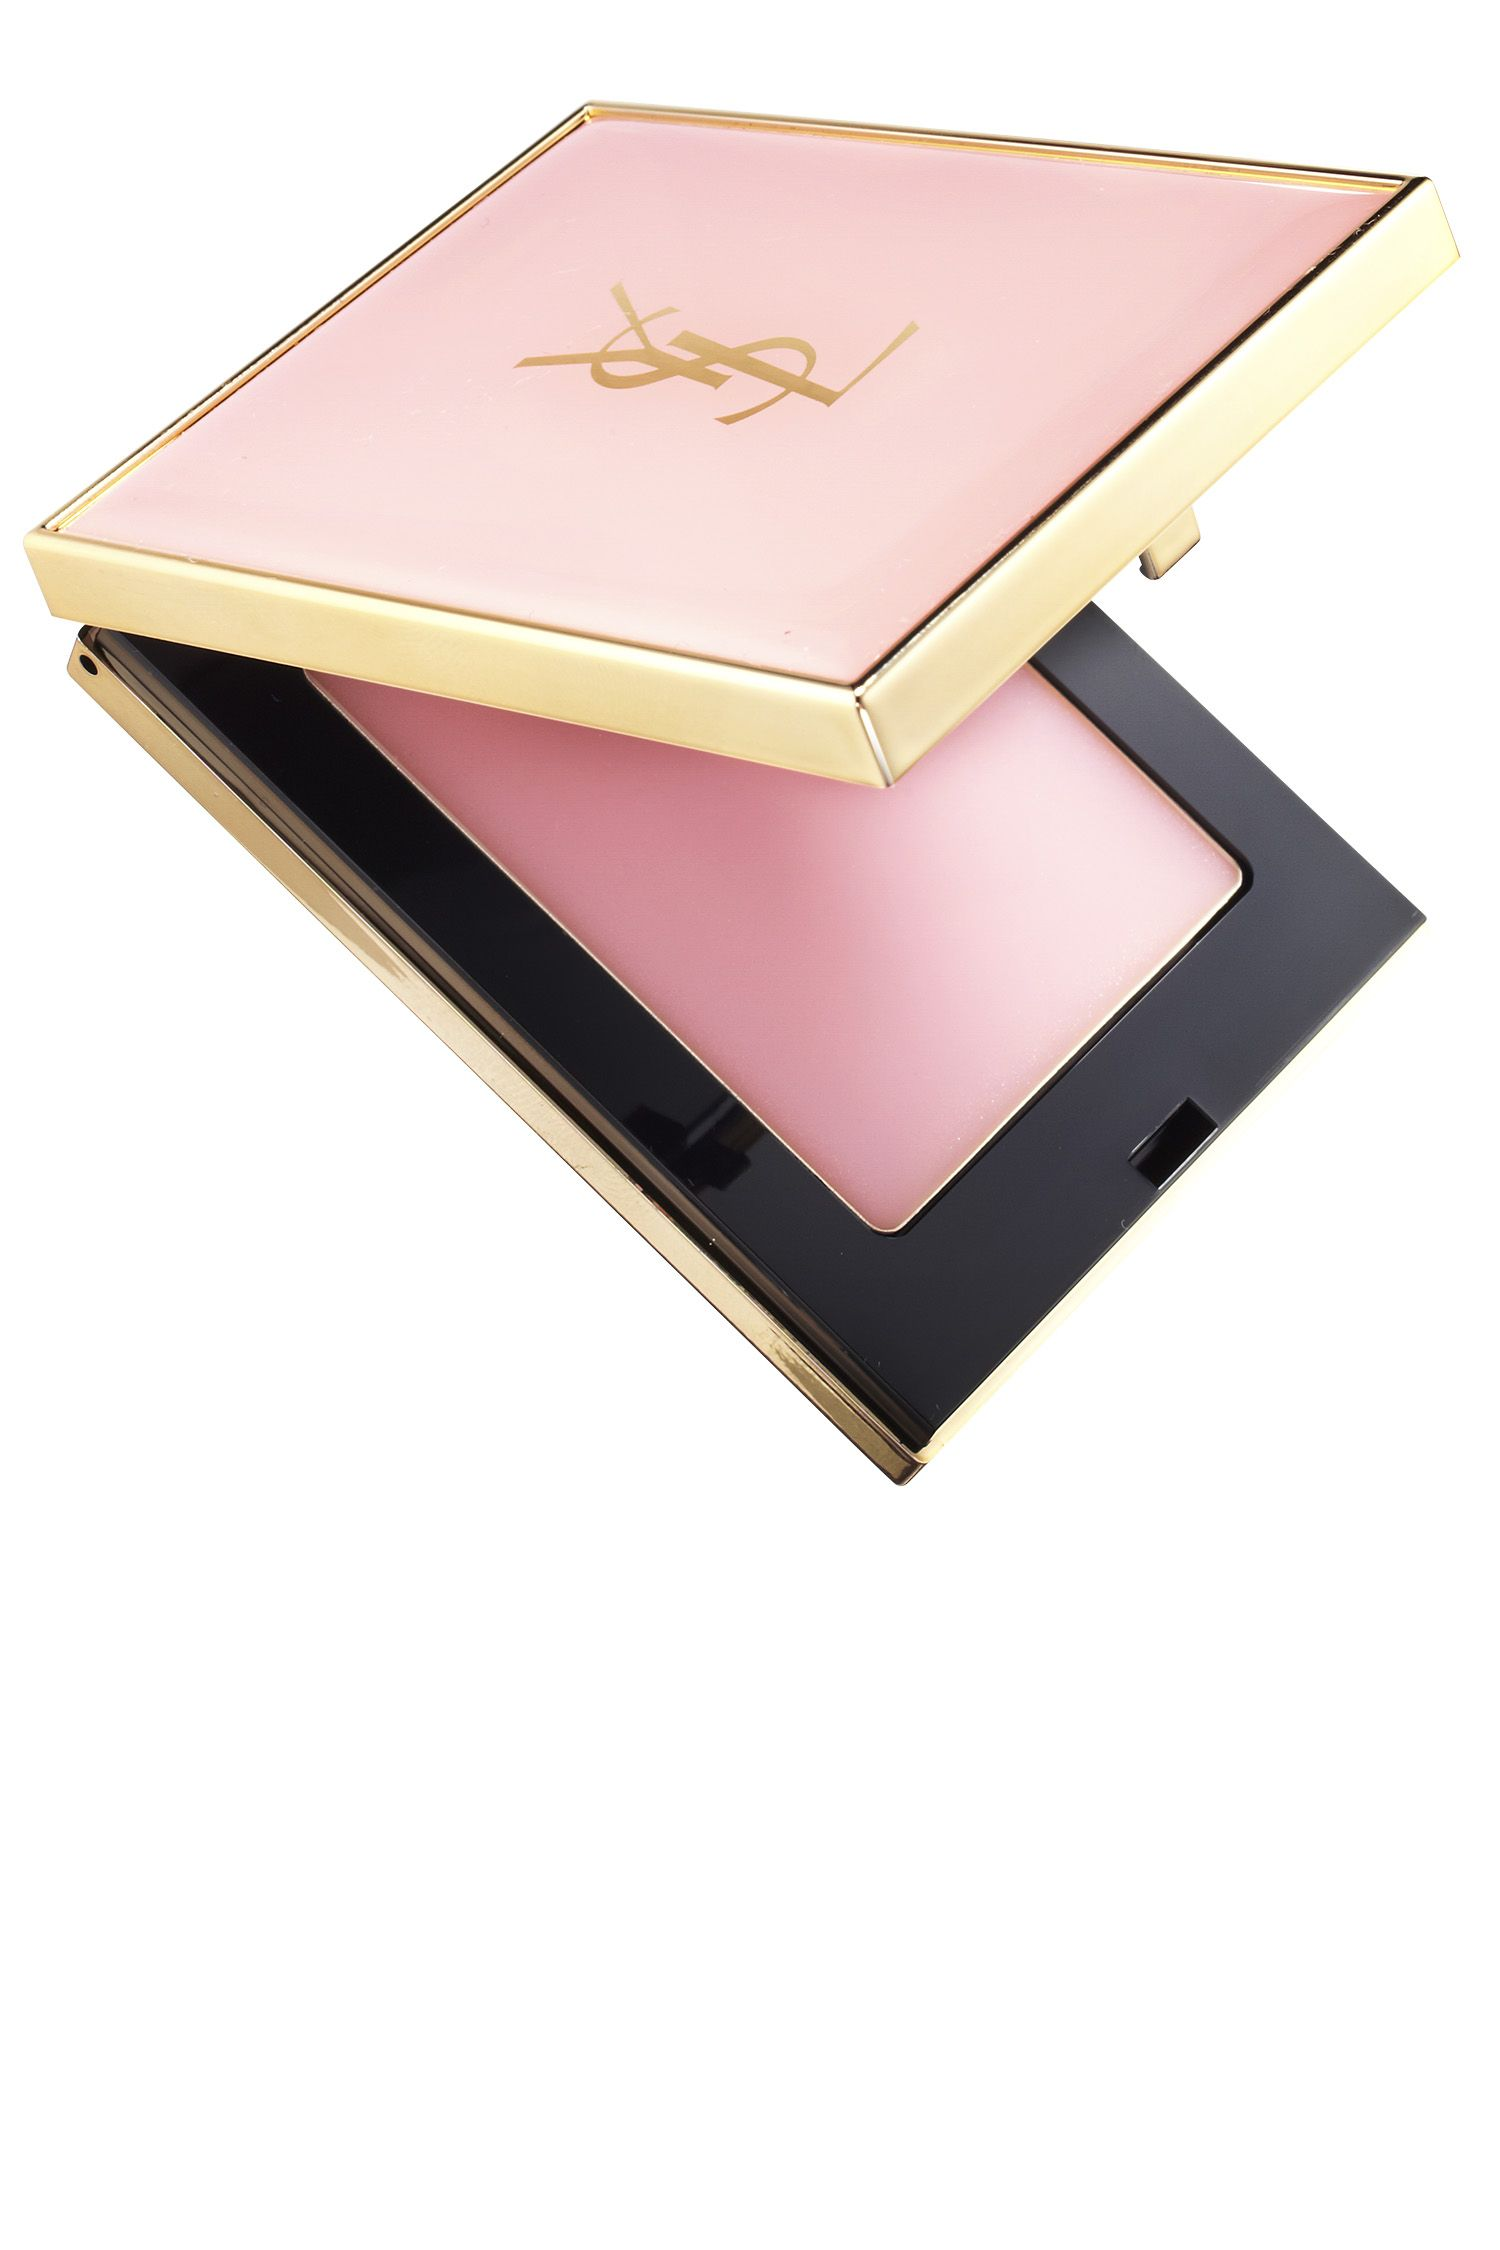 "<p><a href=""http://www.yslbeautyus.com/touche-%C3%A9clat-blur-perfector/1061YSL.html?ci_sku=1061YSL&cm_mcc=cse_feed-_-Makeup-_-google-_-YvesSaintLaurent_Touche_%C3%89clat_Blur_Perfector&utm_campaign=Makeup&utm_medium=cse_feed&dwvar_1061YSL_color=Perfector&utm_source=google&utm_content=YvesSaintLaurent_Touche_%C3%89clat_Blur_Perfector&ci_src=17588969"" target=""_blank"">Yves Saint Laurent</a> Touche Éclat Blur Perfector ($55) is a translucent balm that diffuses light to dramatically diminish the appearance of enlarged pores. Apply with a sponge.</p>"